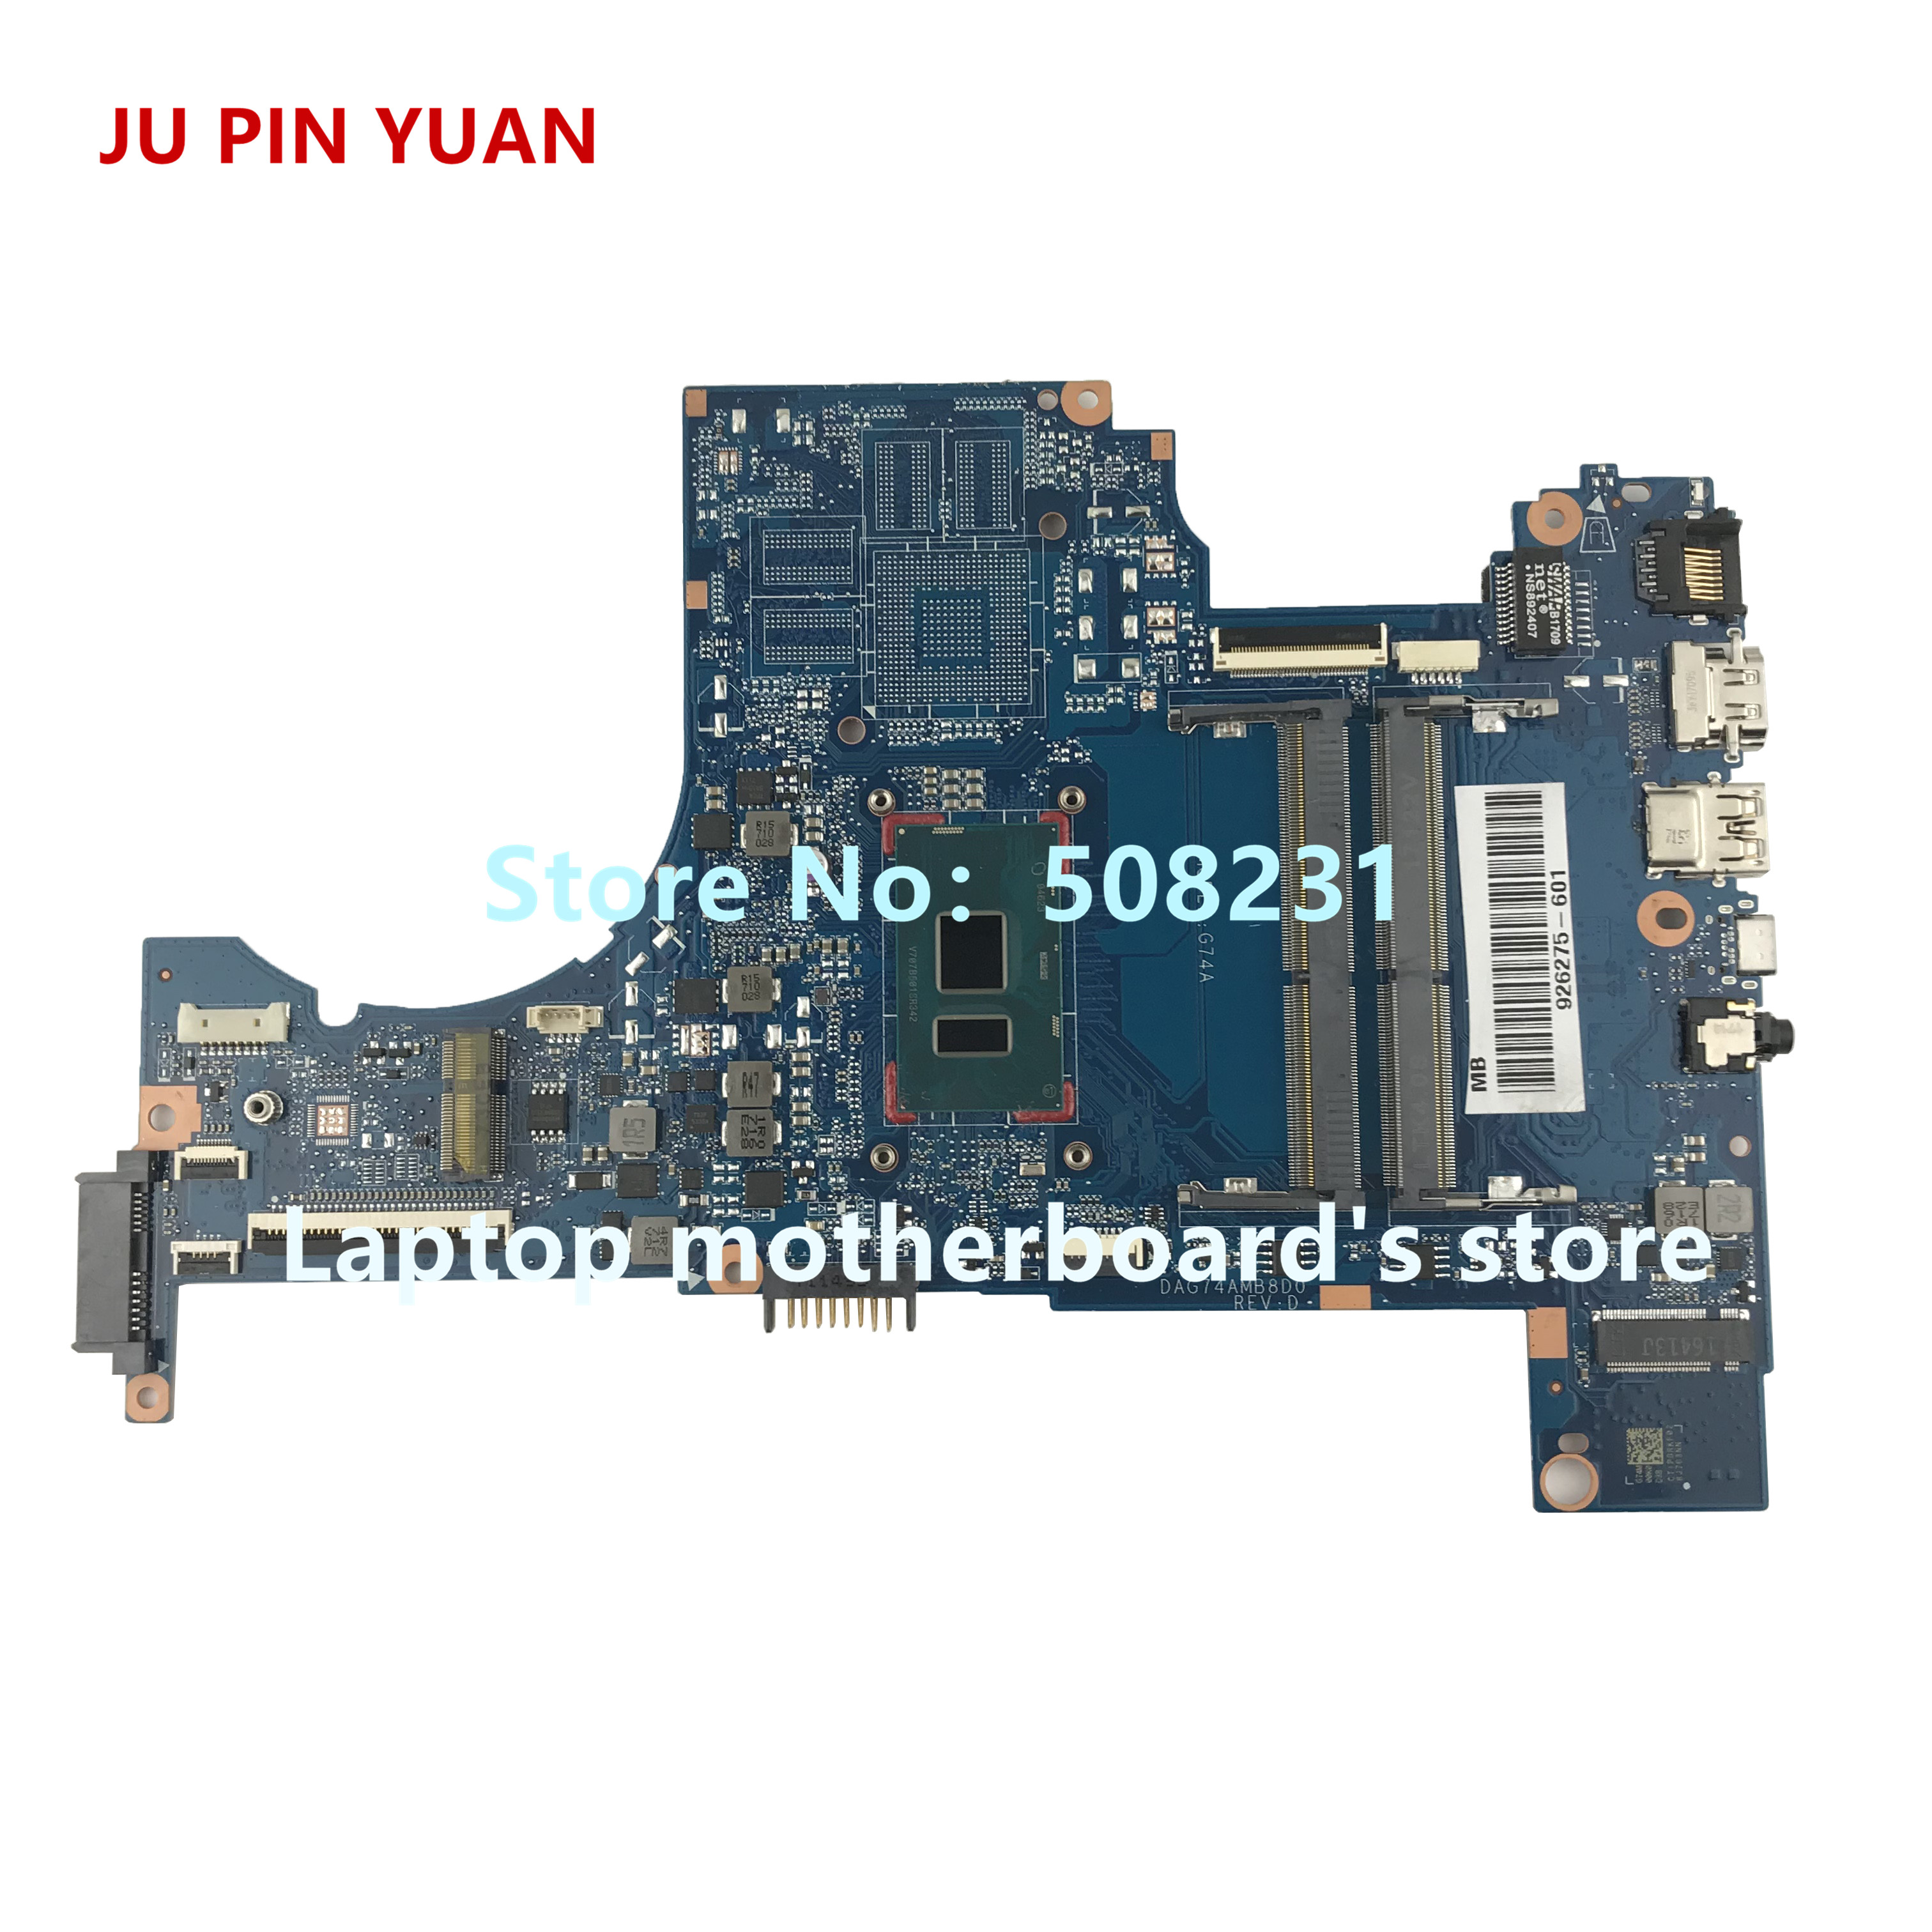 JU PIN YUAN 926275-601 G74A DAG74AMB8D0 for HP PAVILION 15-CC 15T-CC 15-CC050WM laptop motherboard with i5-7200U fully TestedJU PIN YUAN 926275-601 G74A DAG74AMB8D0 for HP PAVILION 15-CC 15T-CC 15-CC050WM laptop motherboard with i5-7200U fully Tested